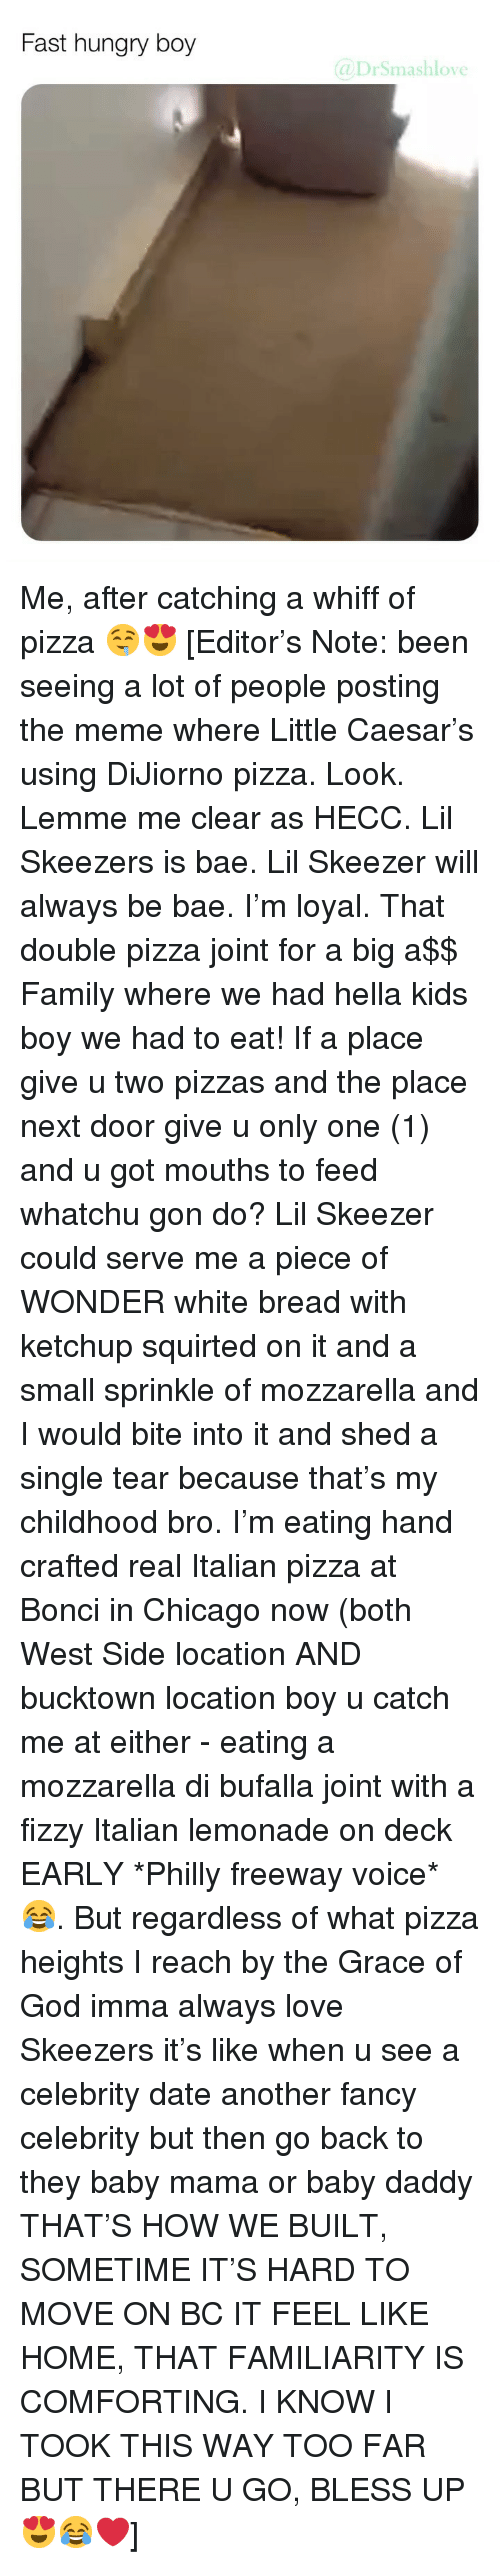 freeway: Fast hungry boy  @DrSmashlove Me, after catching a whiff of pizza 🤤😍 [Editor's Note: been seeing a lot of people posting the meme where Little Caesar's using DiJiorno pizza. Look. Lemme me clear as HECC. Lil Skeezers is bae. Lil Skeezer will always be bae. I'm loyal. That double pizza joint for a big a$$ Family where we had hella kids boy we had to eat! If a place give u two pizzas and the place next door give u only one (1) and u got mouths to feed whatchu gon do? Lil Skeezer could serve me a piece of WONDER white bread with ketchup squirted on it and a small sprinkle of mozzarella and I would bite into it and shed a single tear because that's my childhood bro. I'm eating hand crafted real Italian pizza at Bonci in Chicago now (both West Side location AND bucktown location boy u catch me at either - eating a mozzarella di bufalla joint with a fizzy Italian lemonade on deck EARLY *Philly freeway voice* 😂. But regardless of what pizza heights I reach by the Grace of God imma always love Skeezers it's like when u see a celebrity date another fancy celebrity but then go back to they baby mama or baby daddy THAT'S HOW WE BUILT, SOMETIME IT'S HARD TO MOVE ON BC IT FEEL LIKE HOME, THAT FAMILIARITY IS COMFORTING. I KNOW I TOOK THIS WAY TOO FAR BUT THERE U GO, BLESS UP 😍😂❤️]